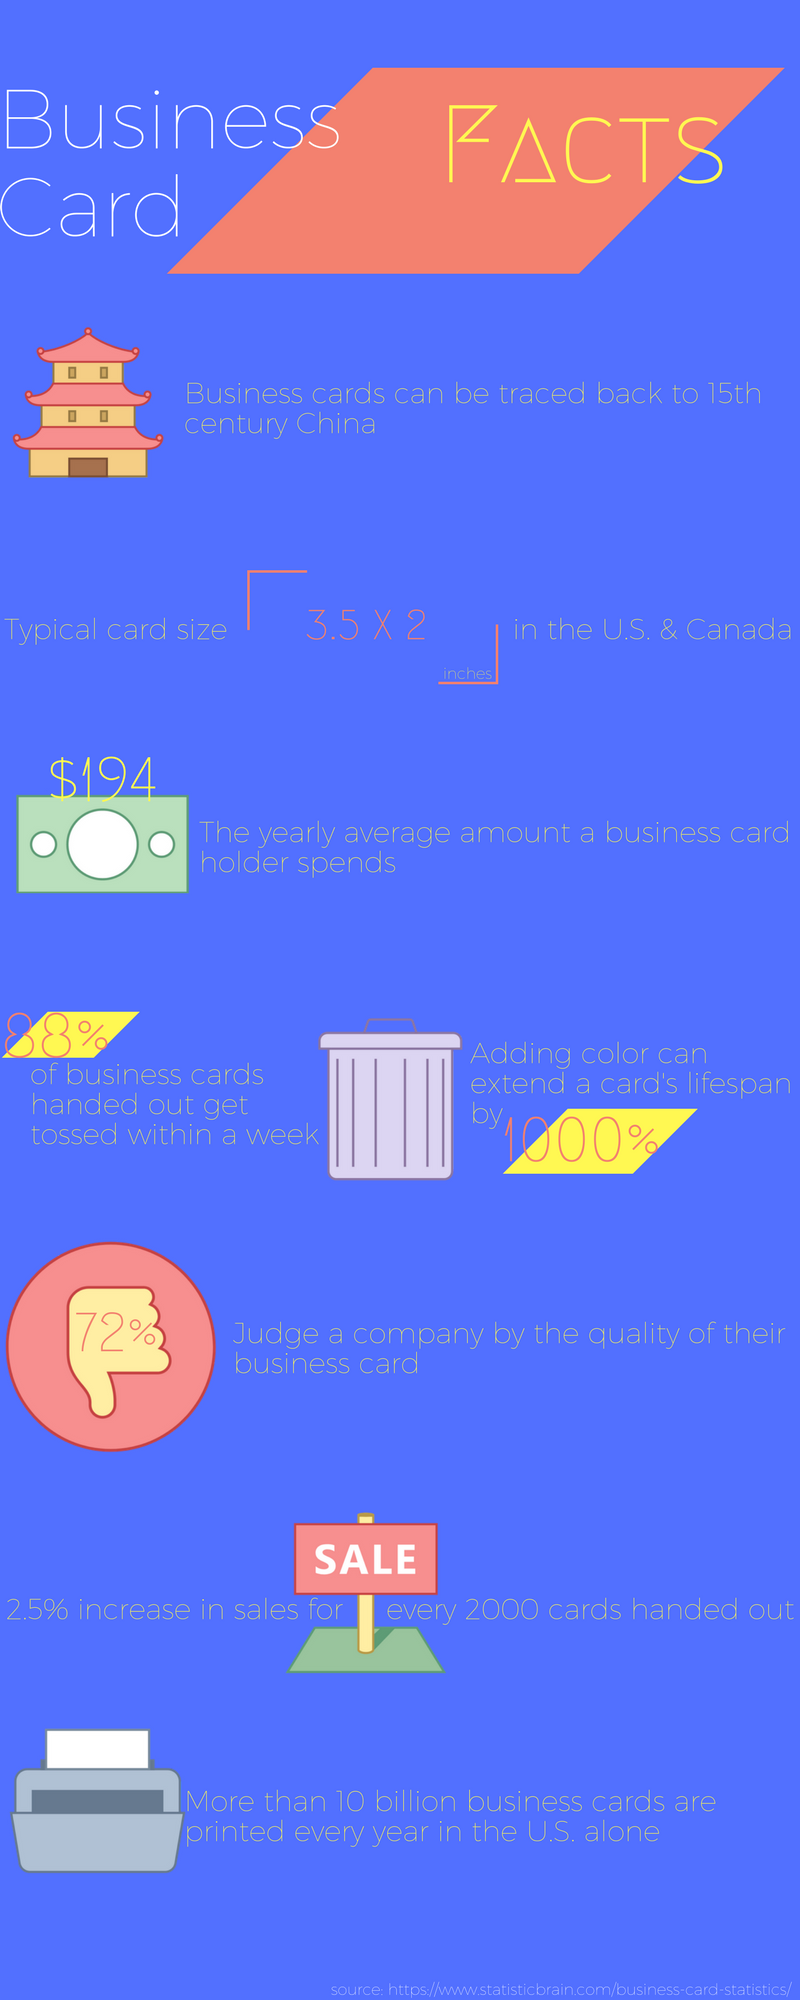 Lawn Care Business Card Facts.png